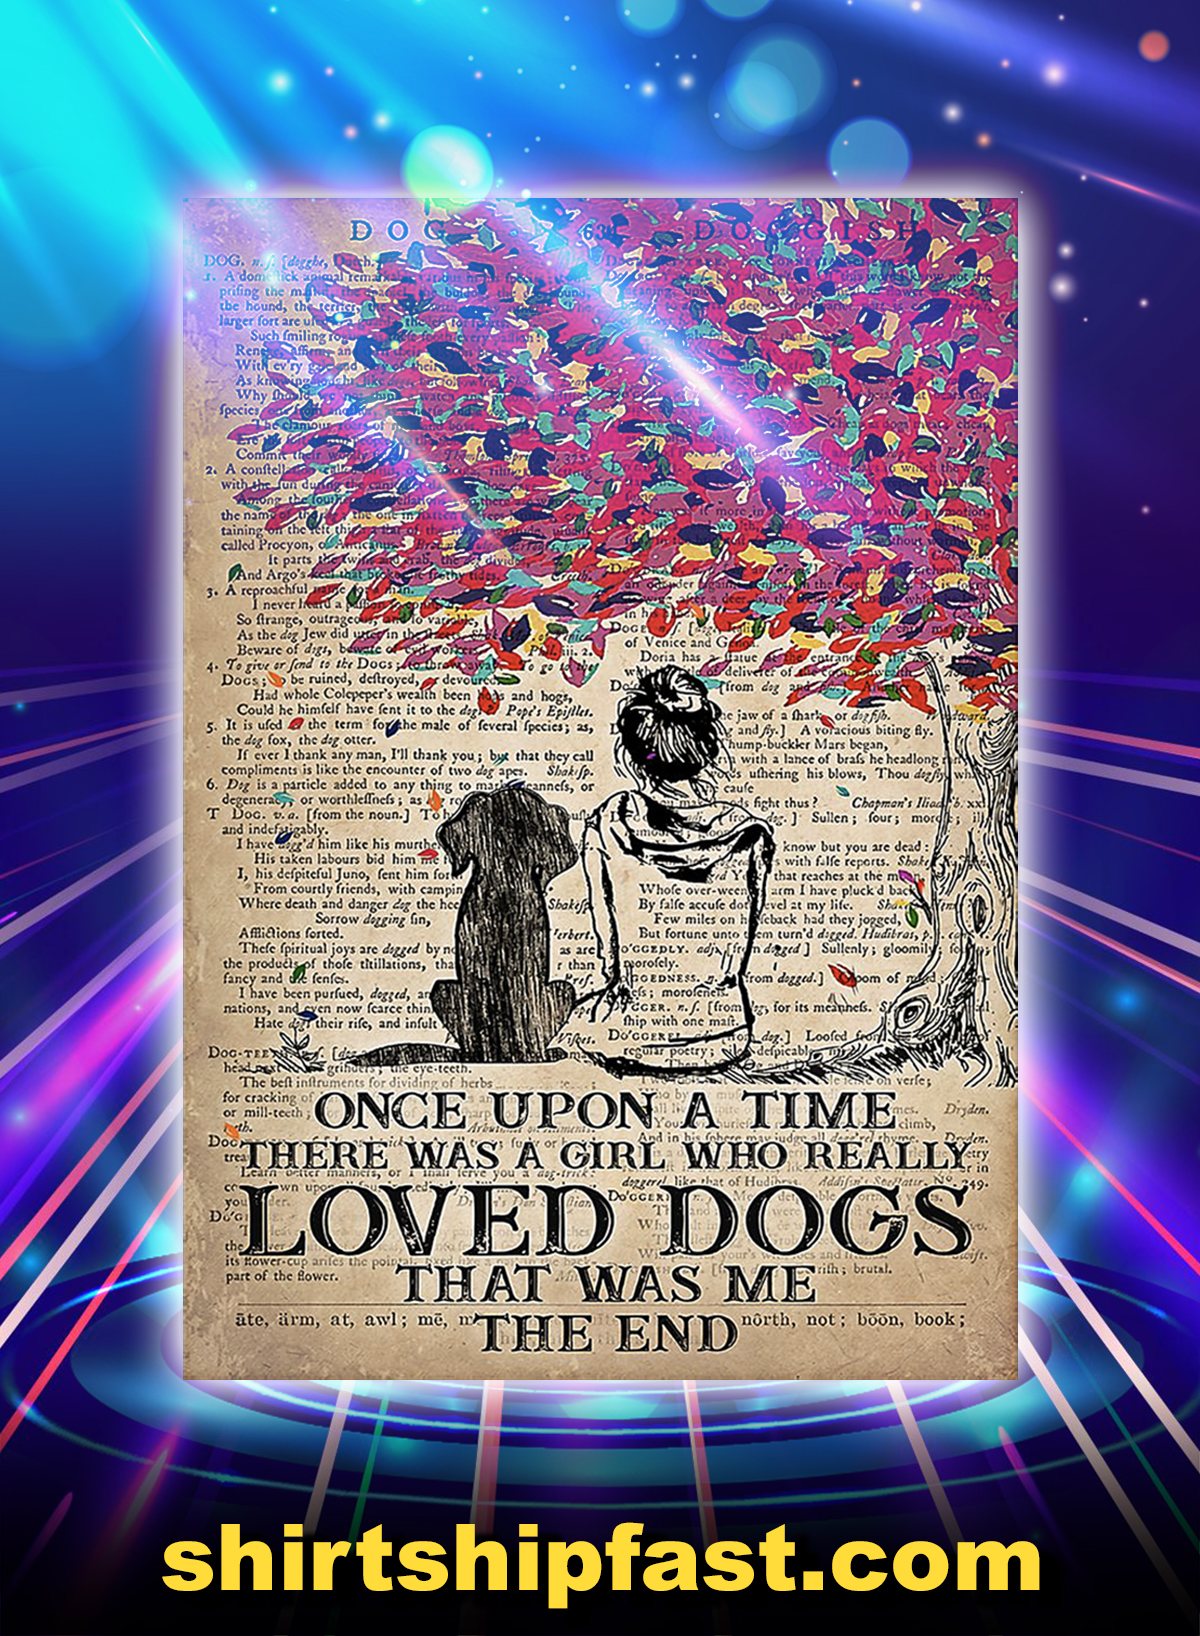 Once upon a time there was a girl who really loved dogs poster - A1